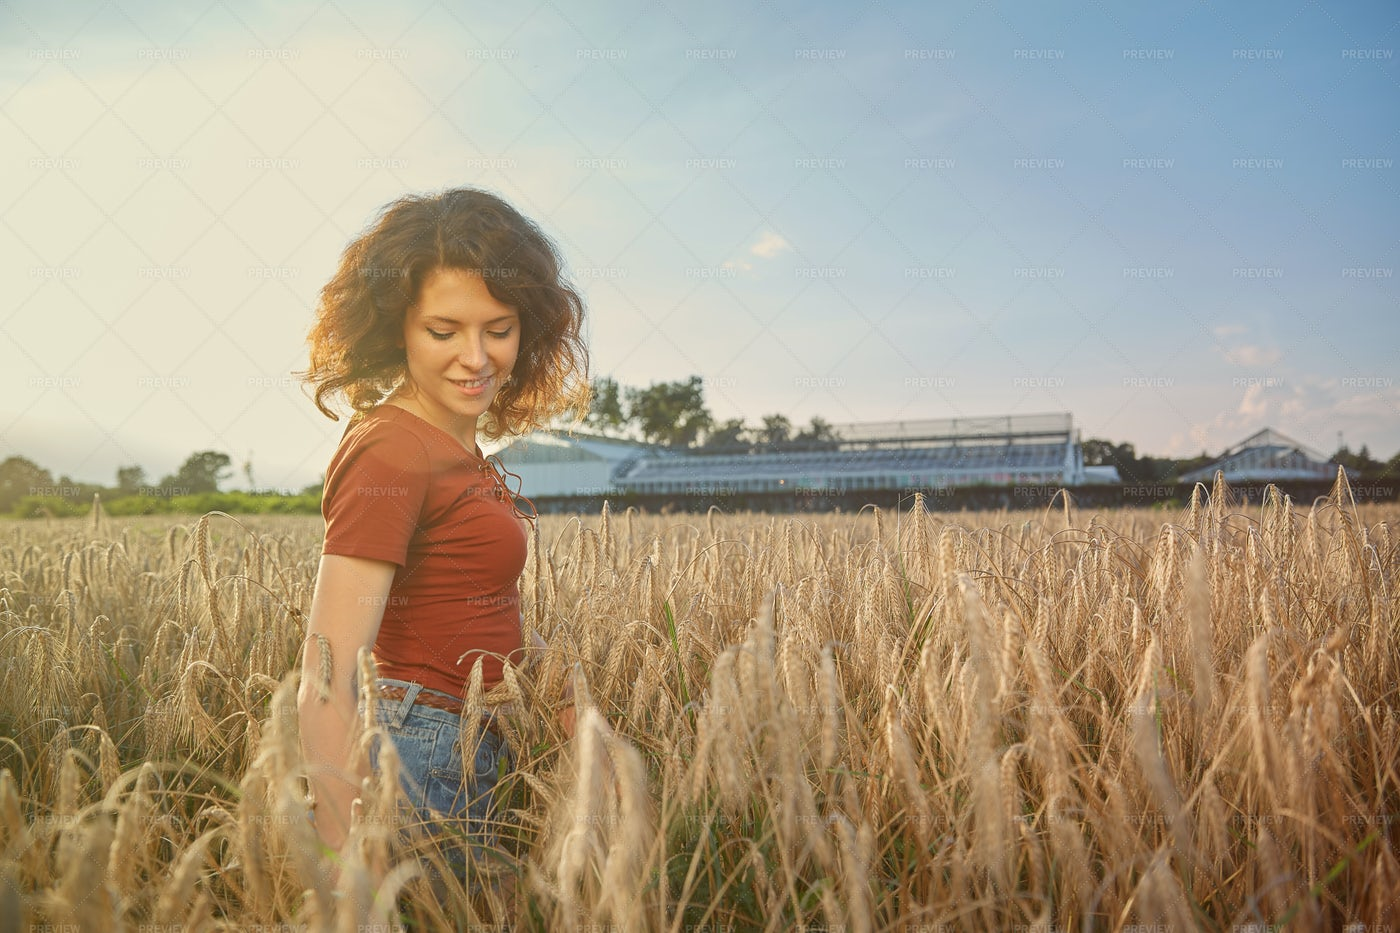 Woman In A Field: Stock Photos